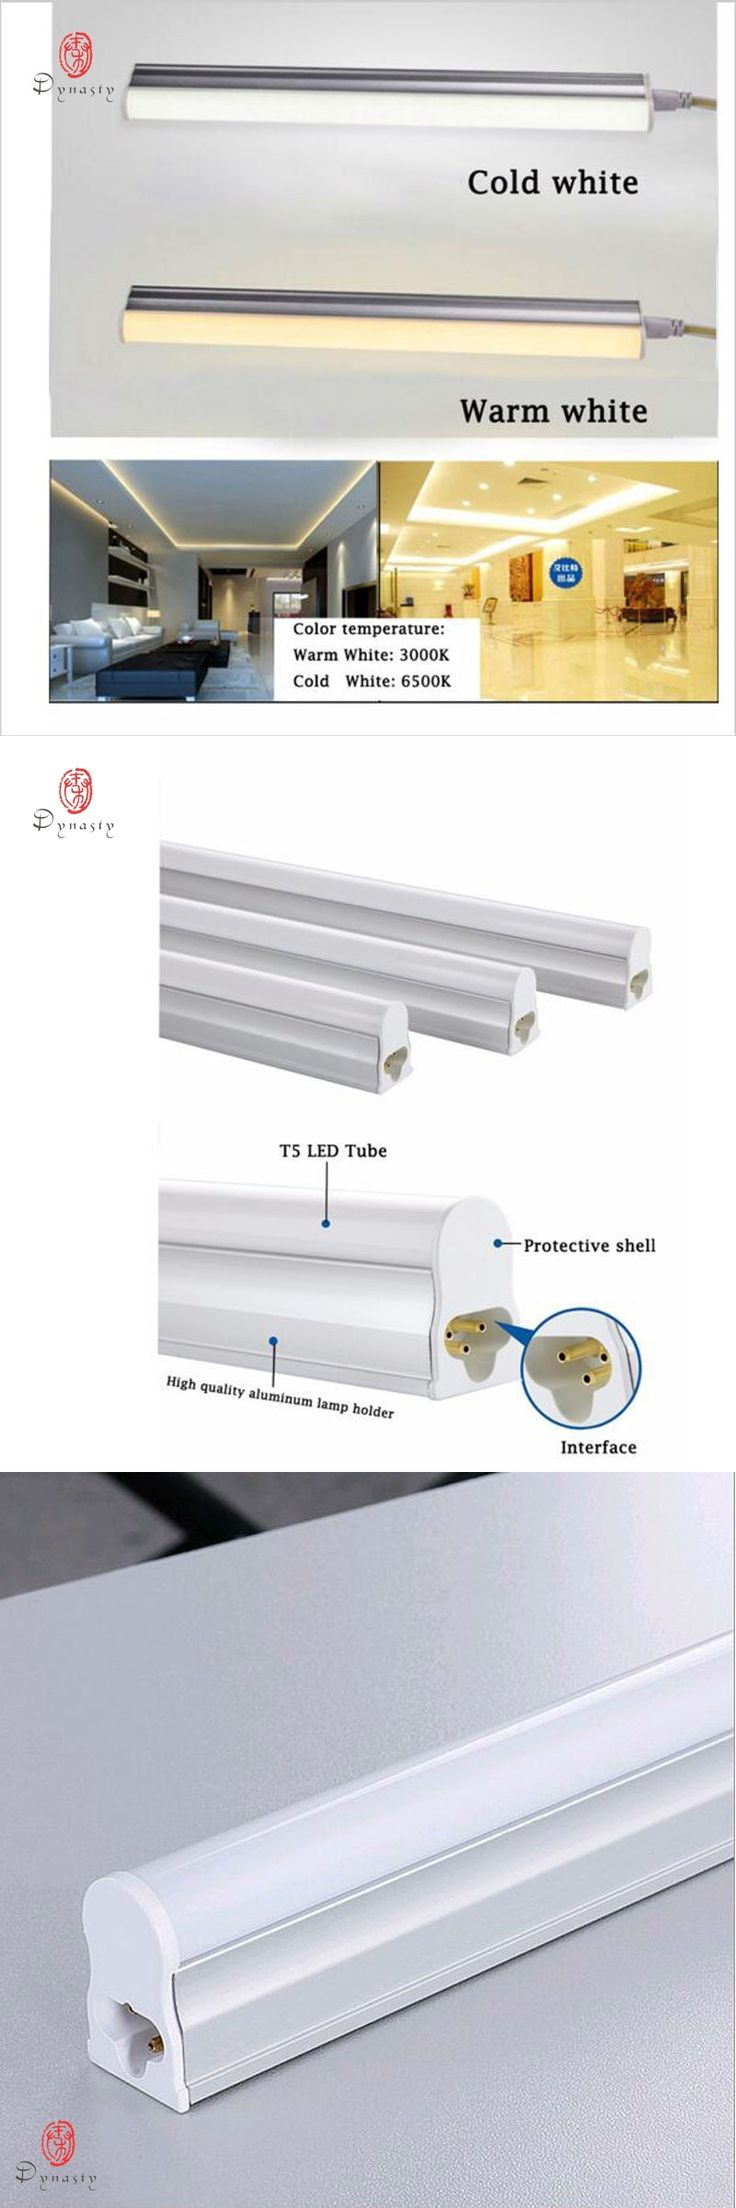 LED T5 T8 Tube Super Bright Replace of Traditional Ballast Fluorescent T5 T8 30CM 60CM 1Feet 2 Feet LED Fixture Strip Dynasty